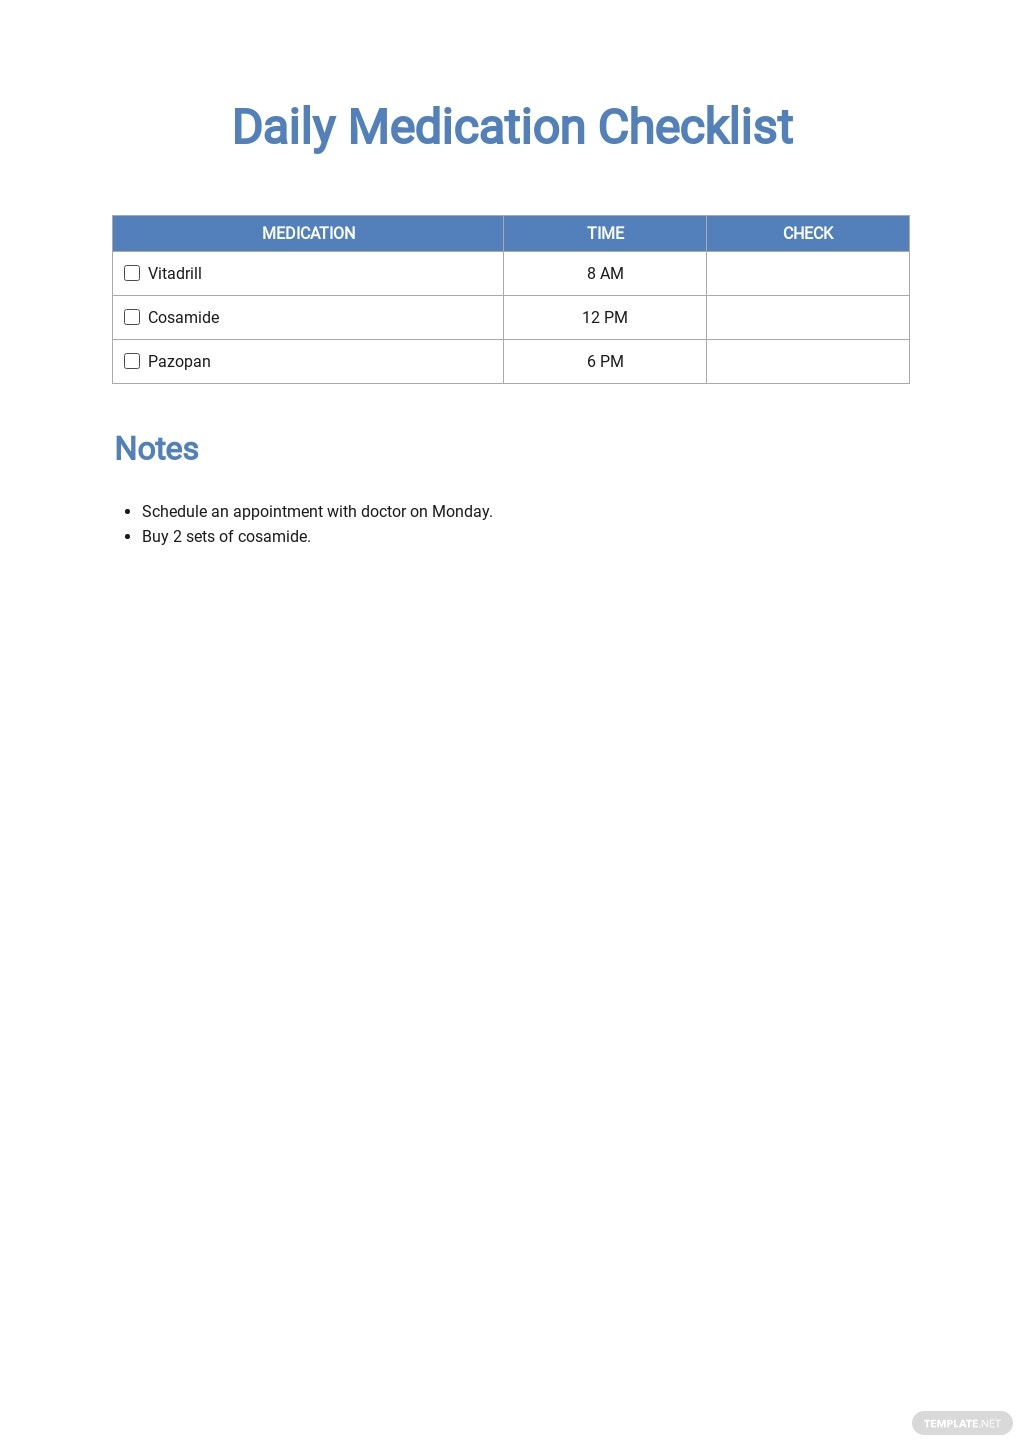 Daily Medication Checklist Template.jpe